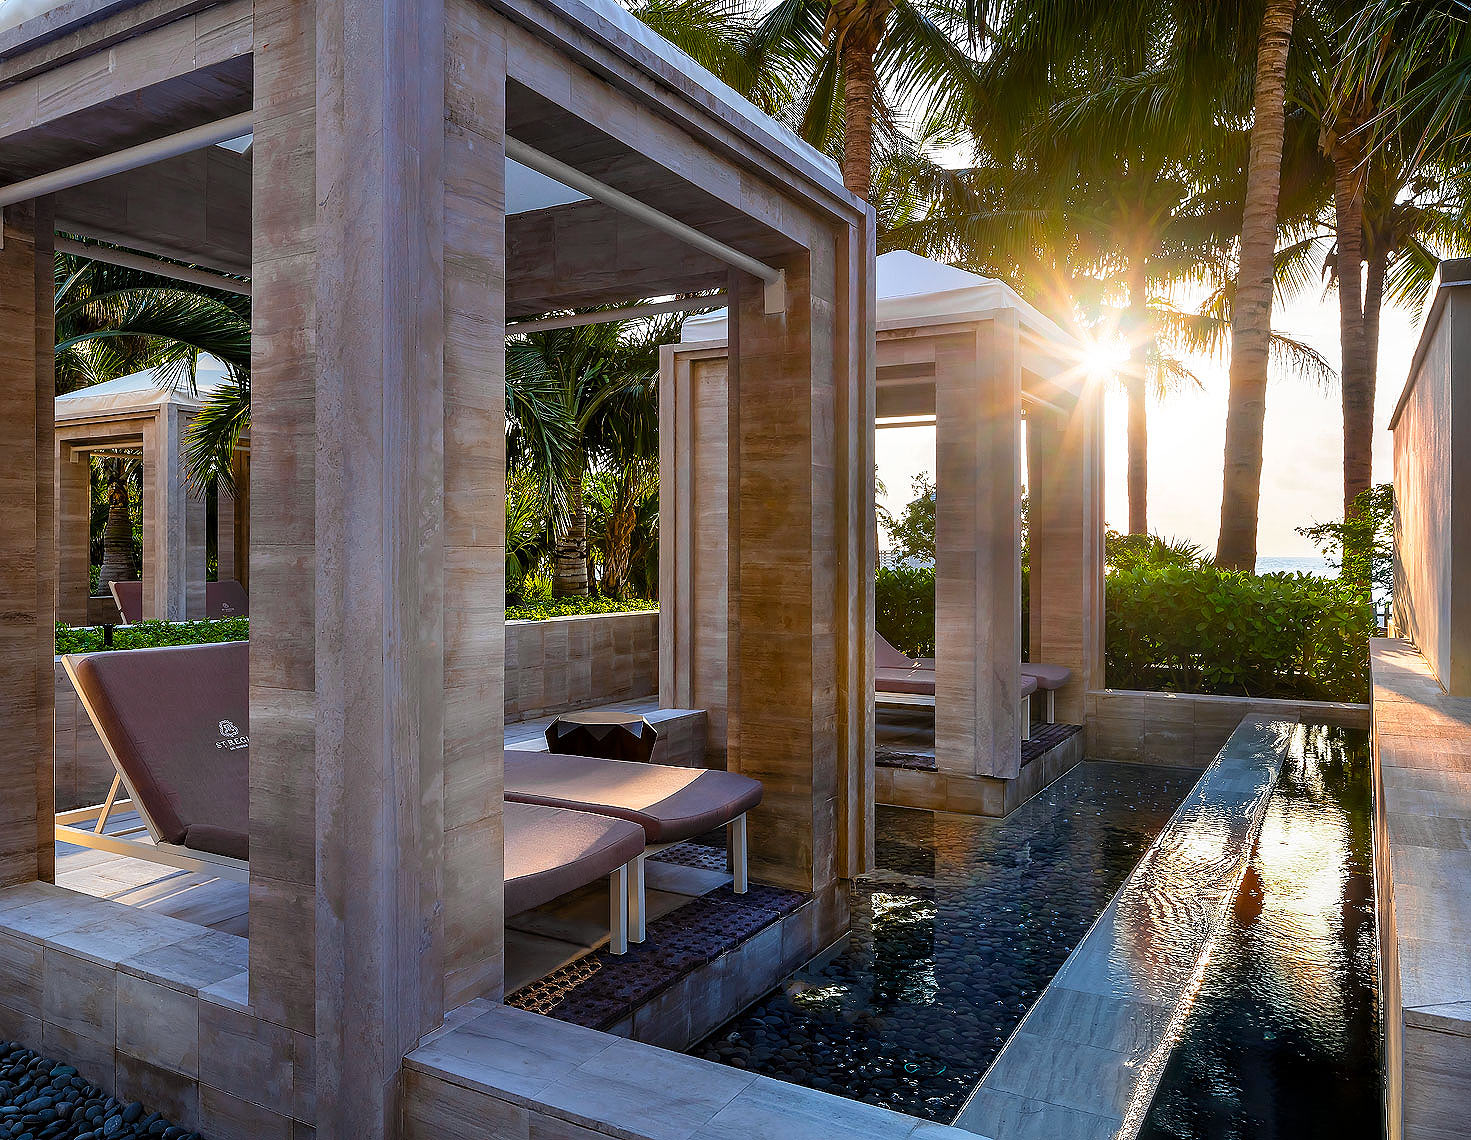 St_Regis_Bal_Harbour_Hotel_Cabanas - Resort Photography